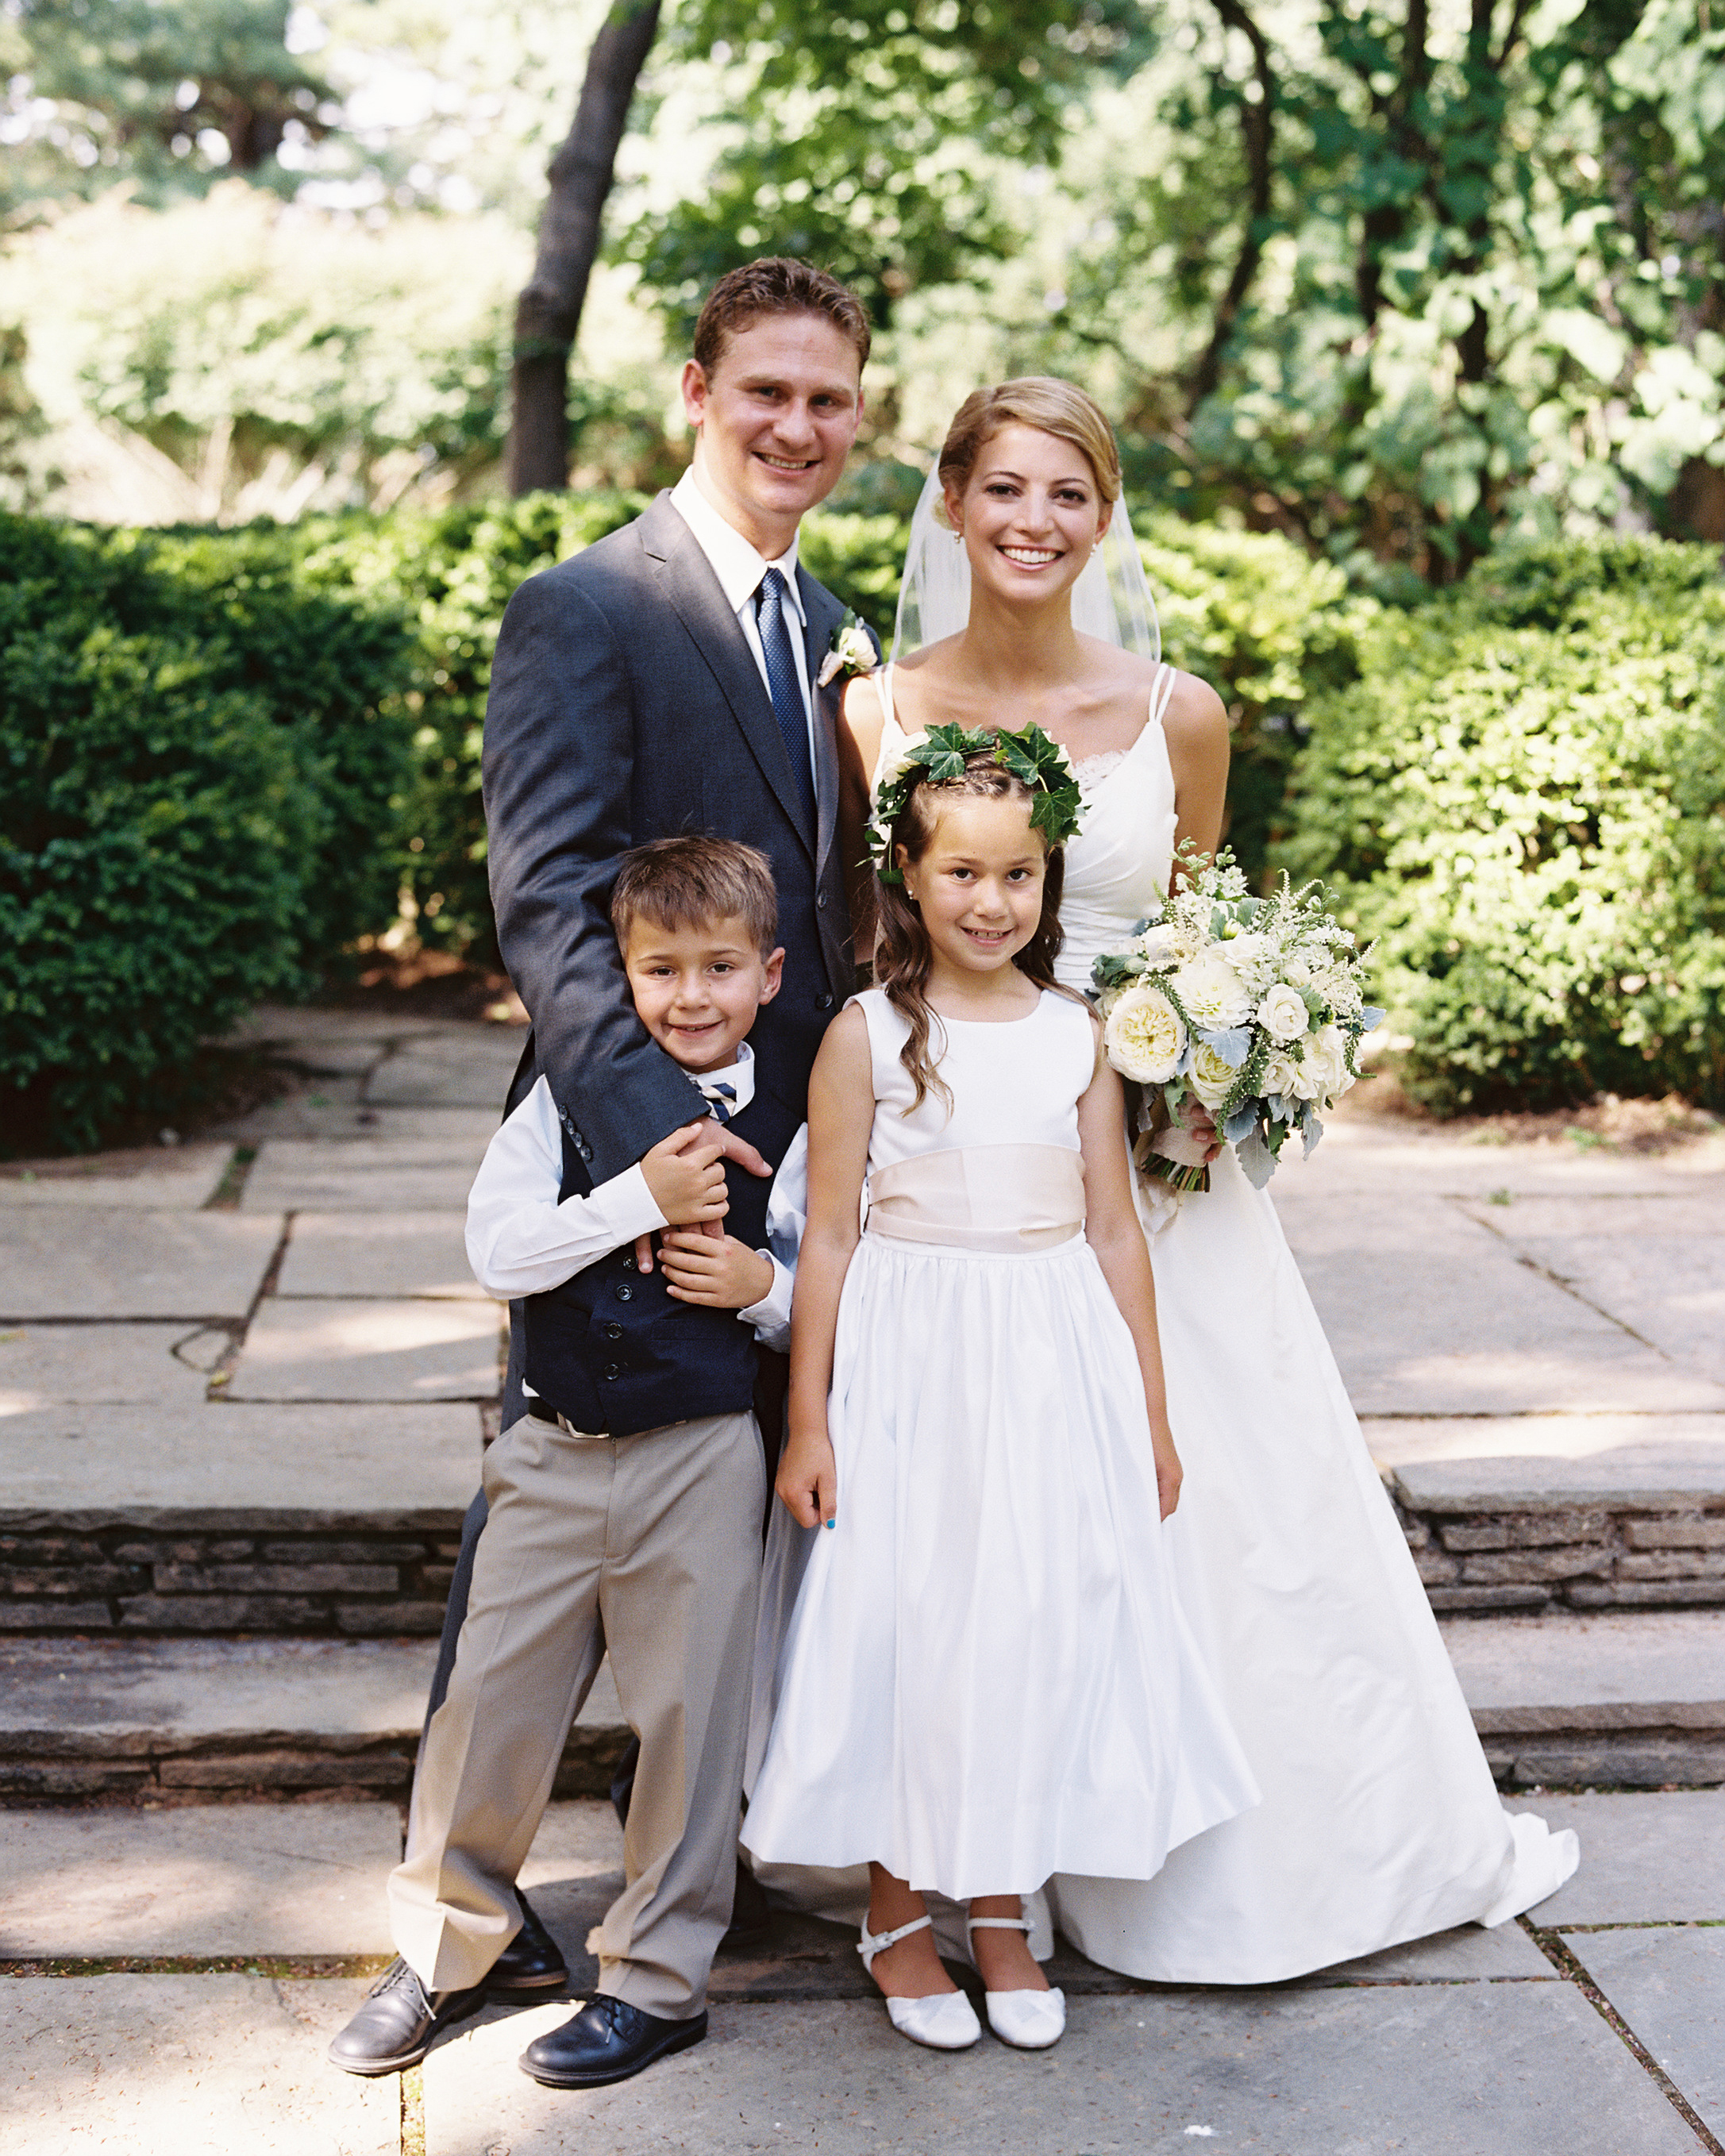 beth-scott-wedding-kids-0462-s112077-0715.jpg